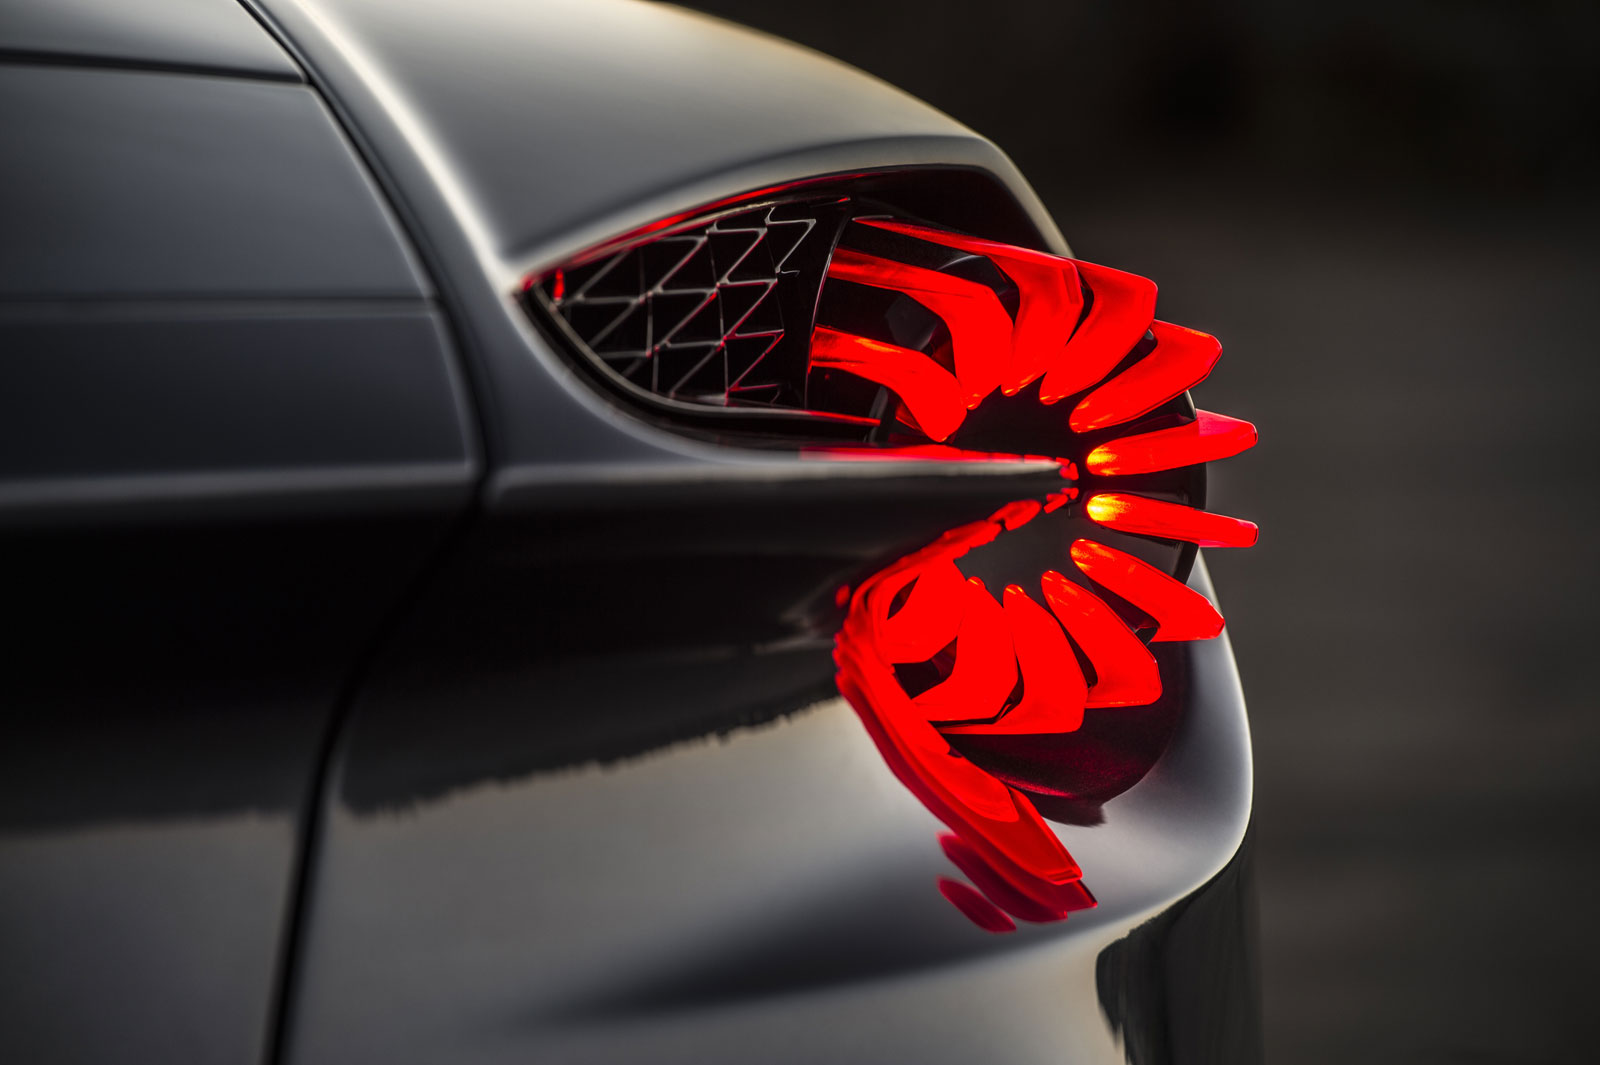 Aston Martin Vanquish Zagato Volante Tail Light Car Body Design